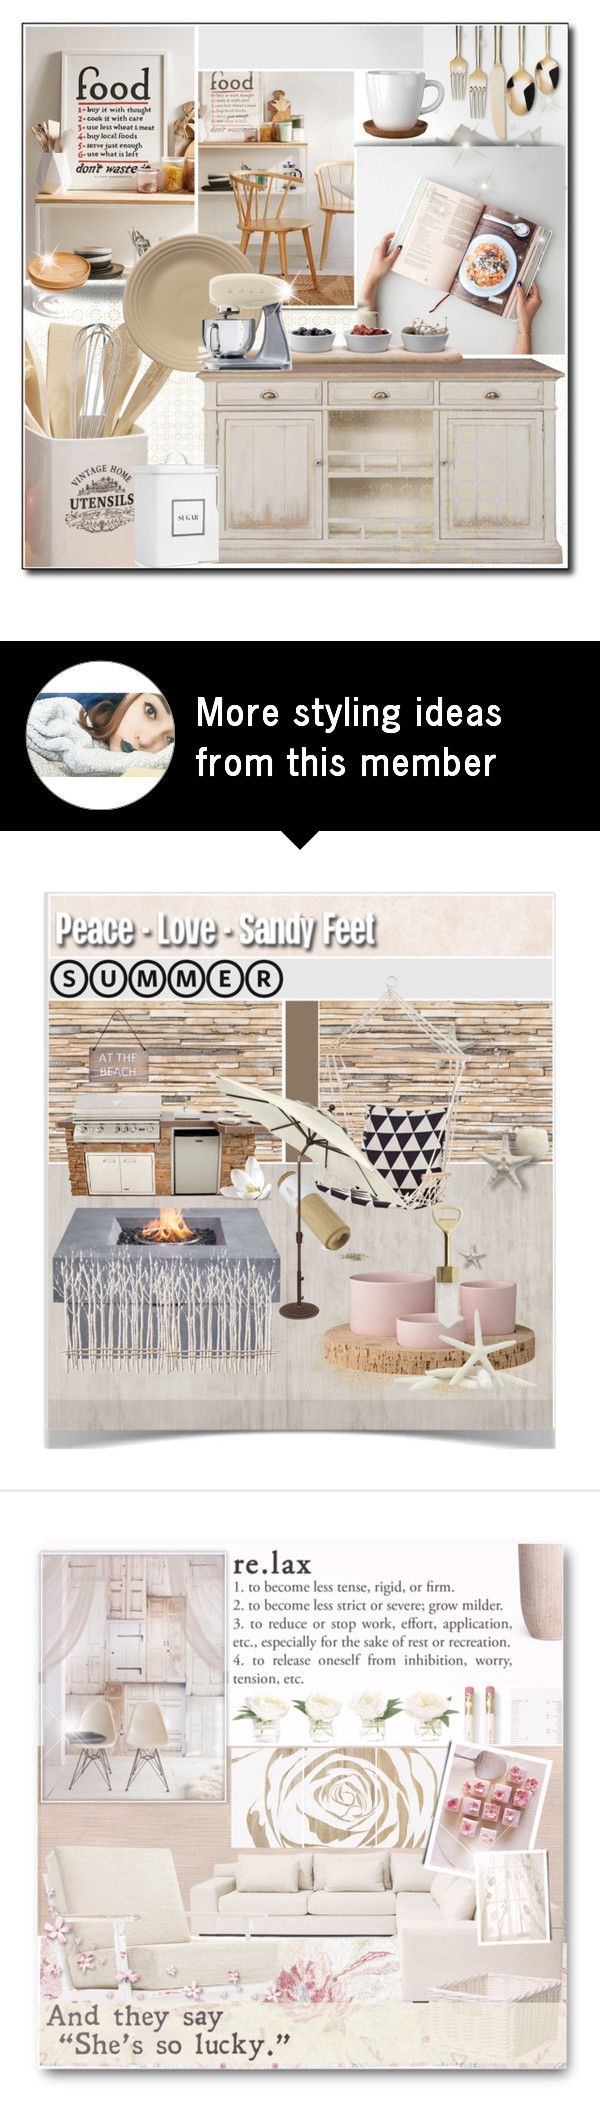 Threshold home decor shop for threshold home decor on polyvore - Interior Decorating Foodspired By Jessinerio4l On Polyvore Featuring Interior Interiors Interior Design Home